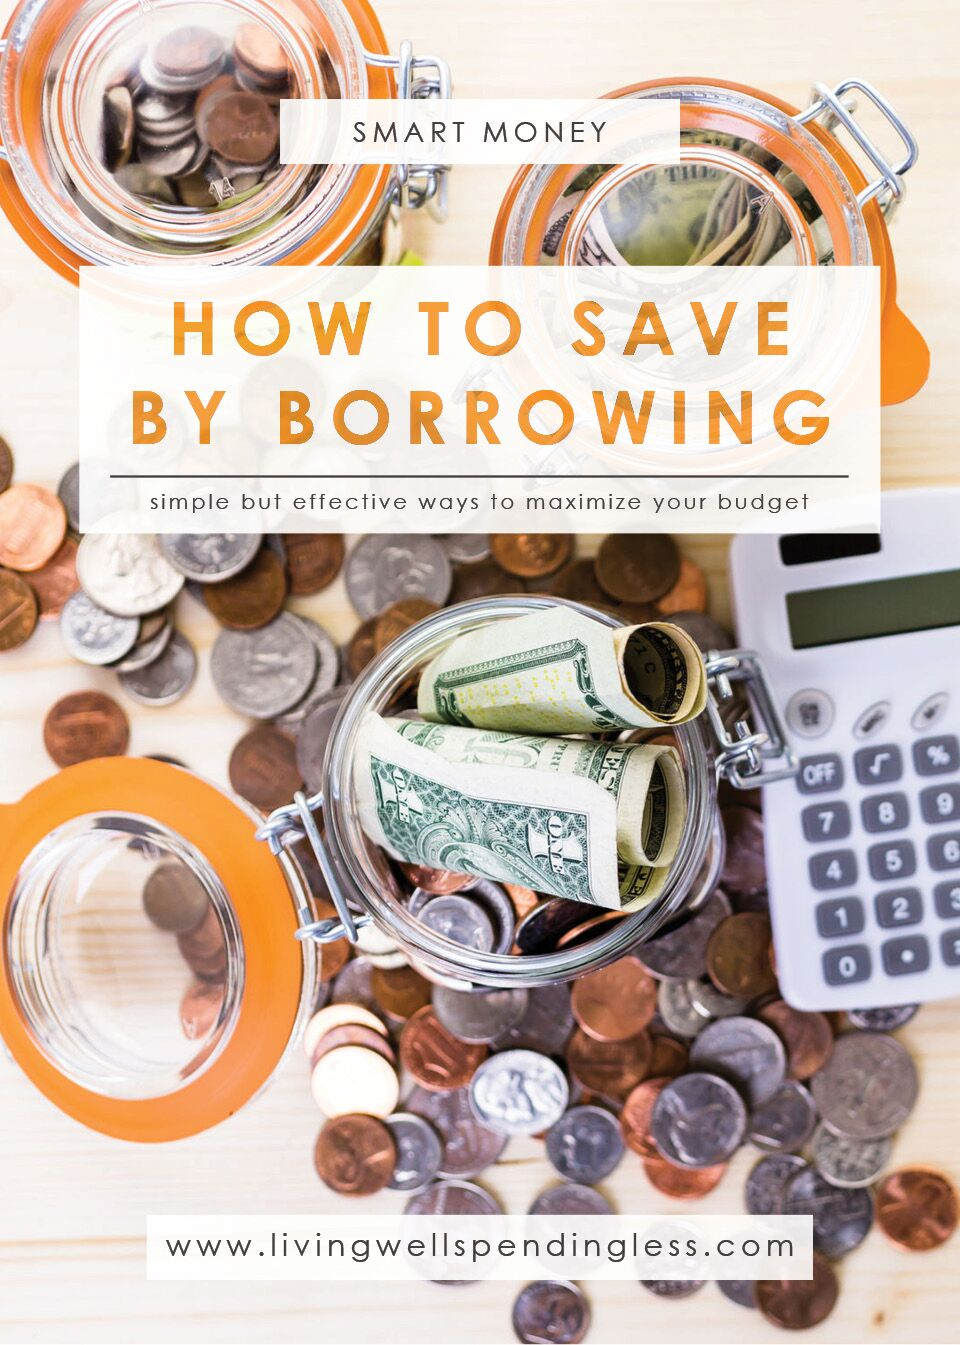 Save by Borrowing | Get Things for Free | Money Saving Tips | Save by borrowing technique